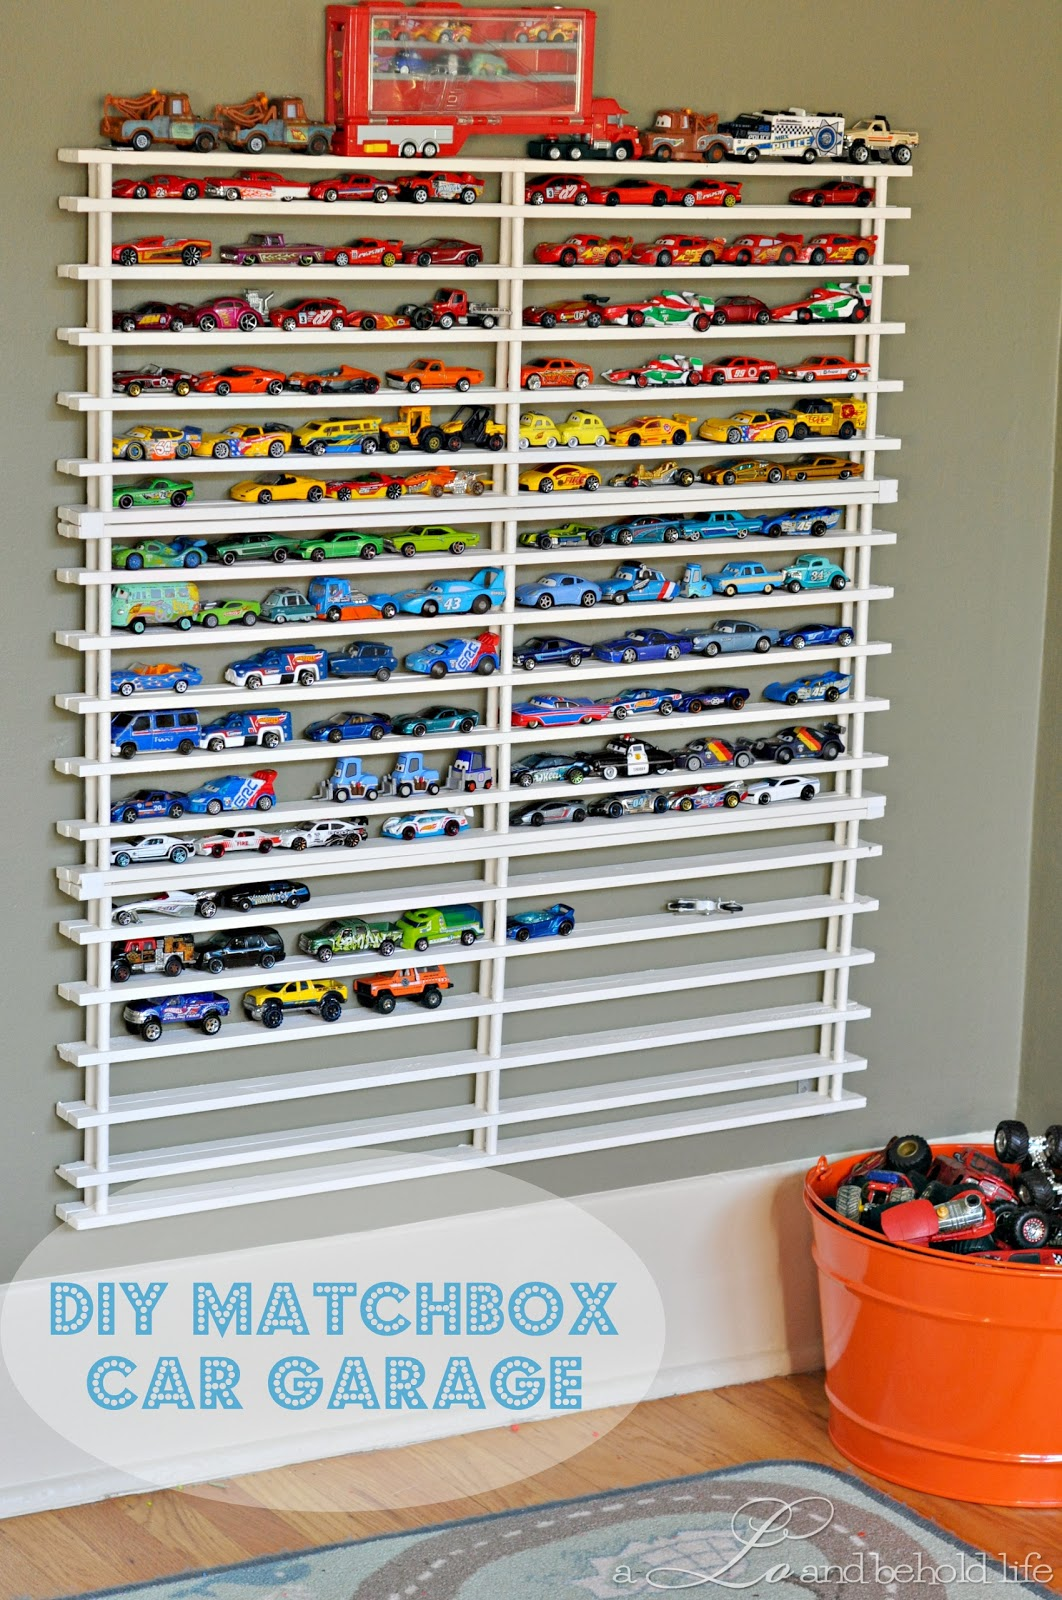 DIY Matchbox Car Garage **UPDATED**   A Lo and Behold Life